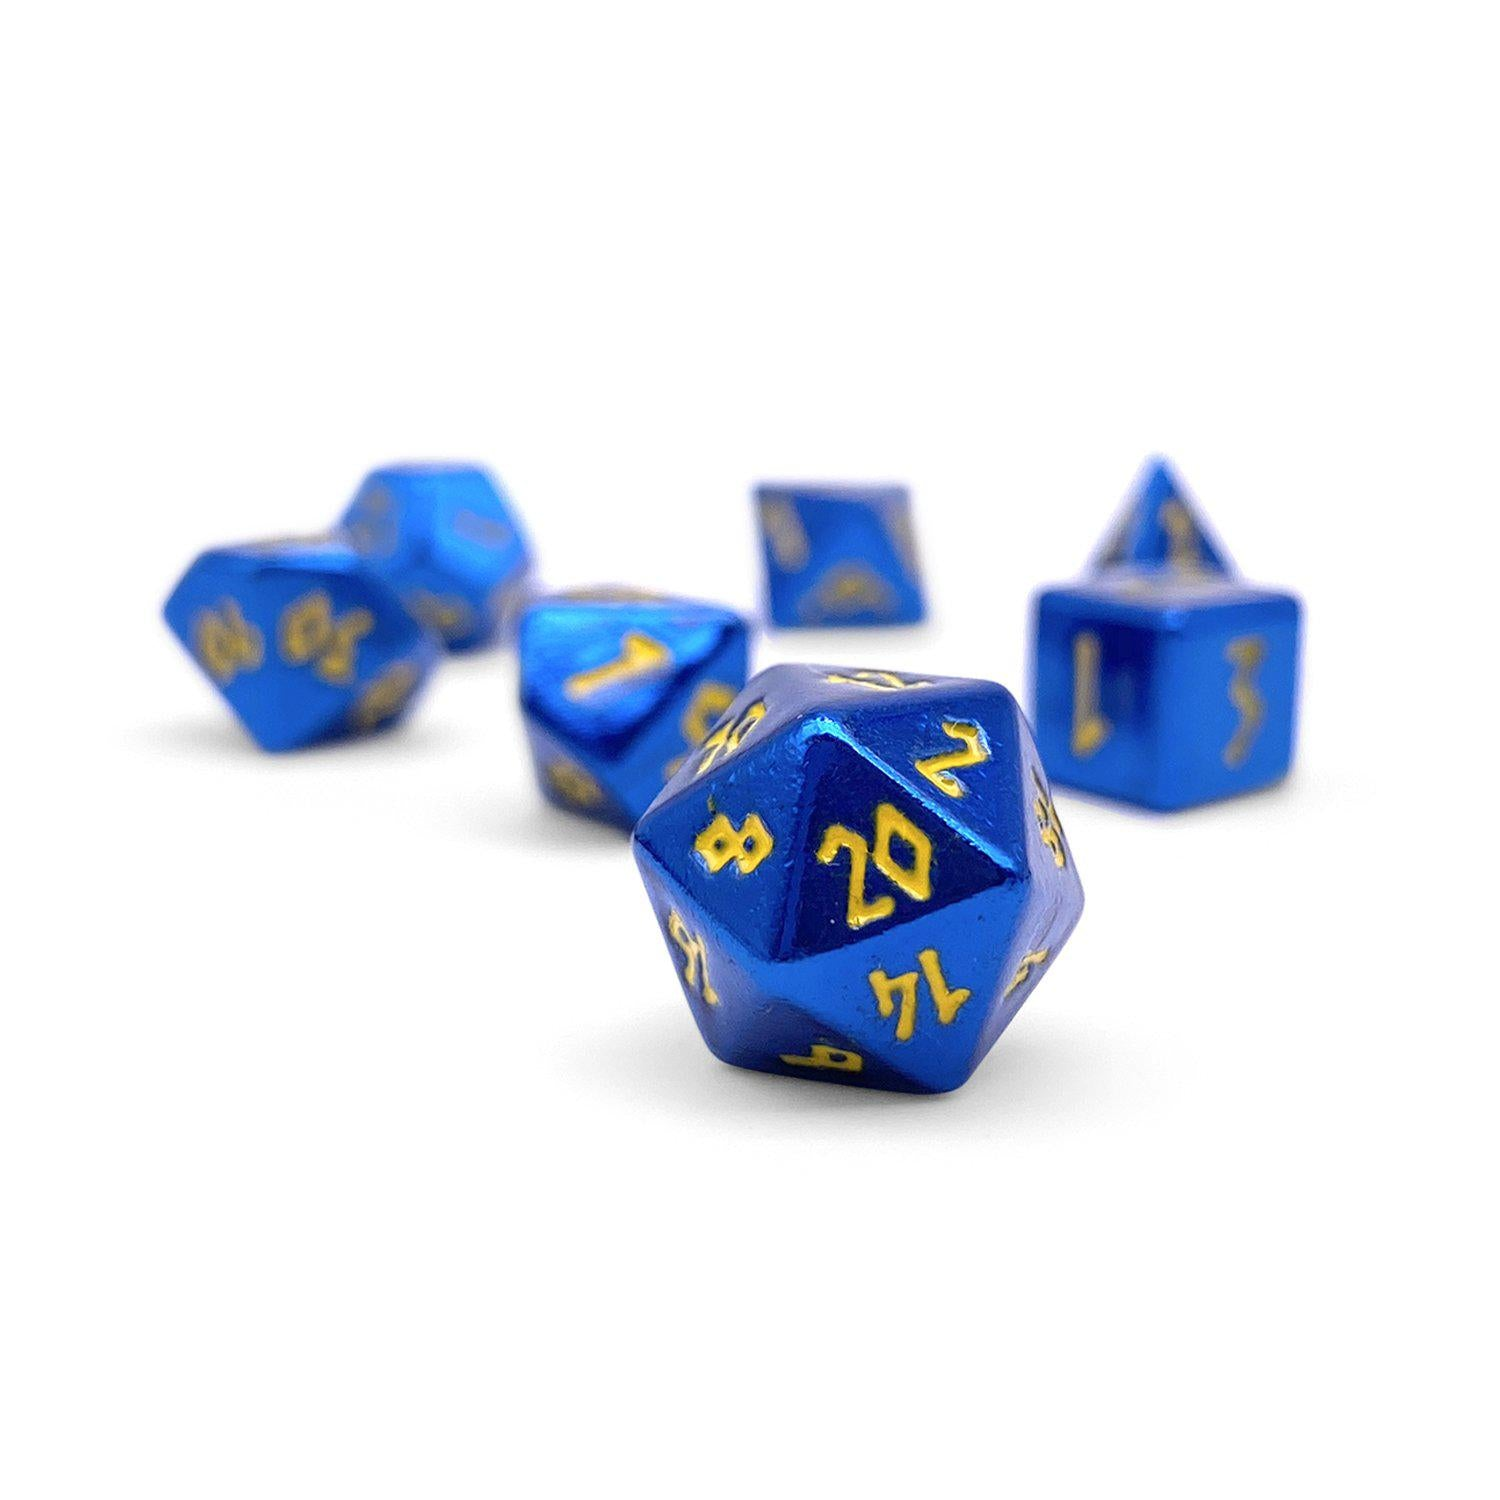 Lightning Bolt Pebble ™ Dice - 10mm Alloy Mini Polyhedral Dice Set